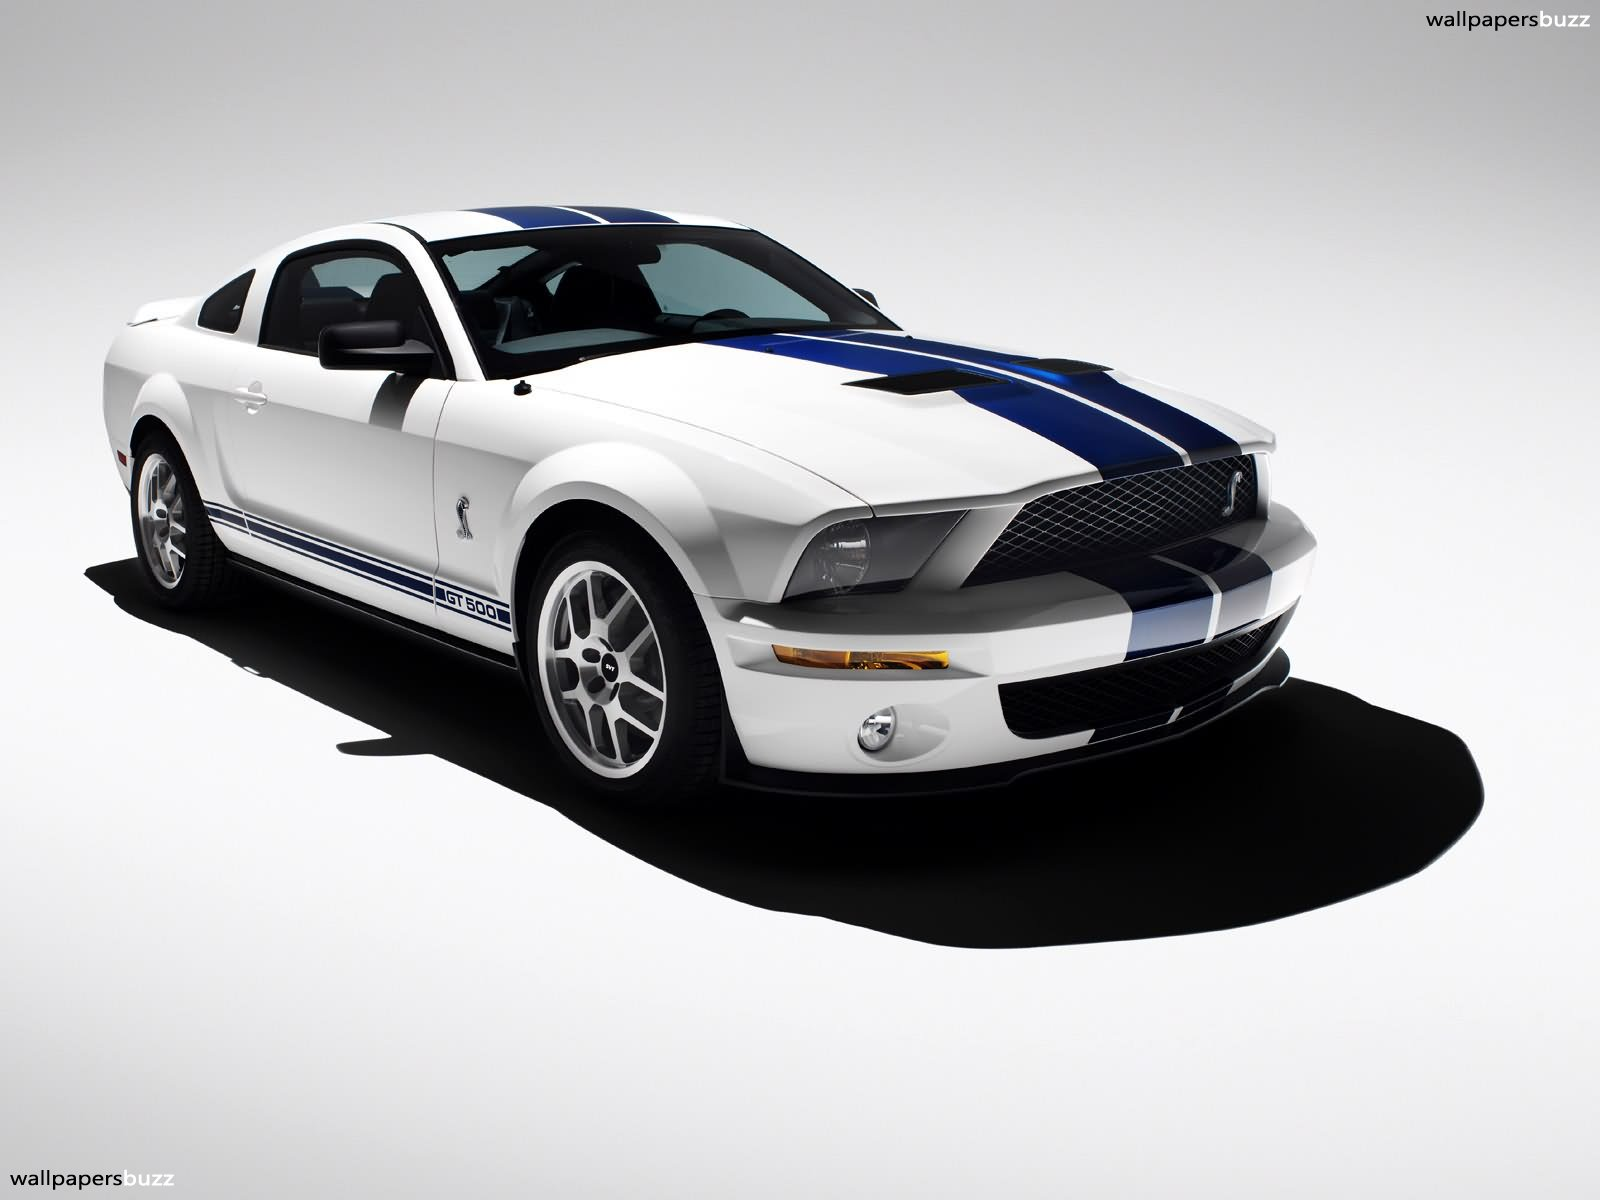 ford mustang shelby gt500 car and electronic wallpaper. Black Bedroom Furniture Sets. Home Design Ideas